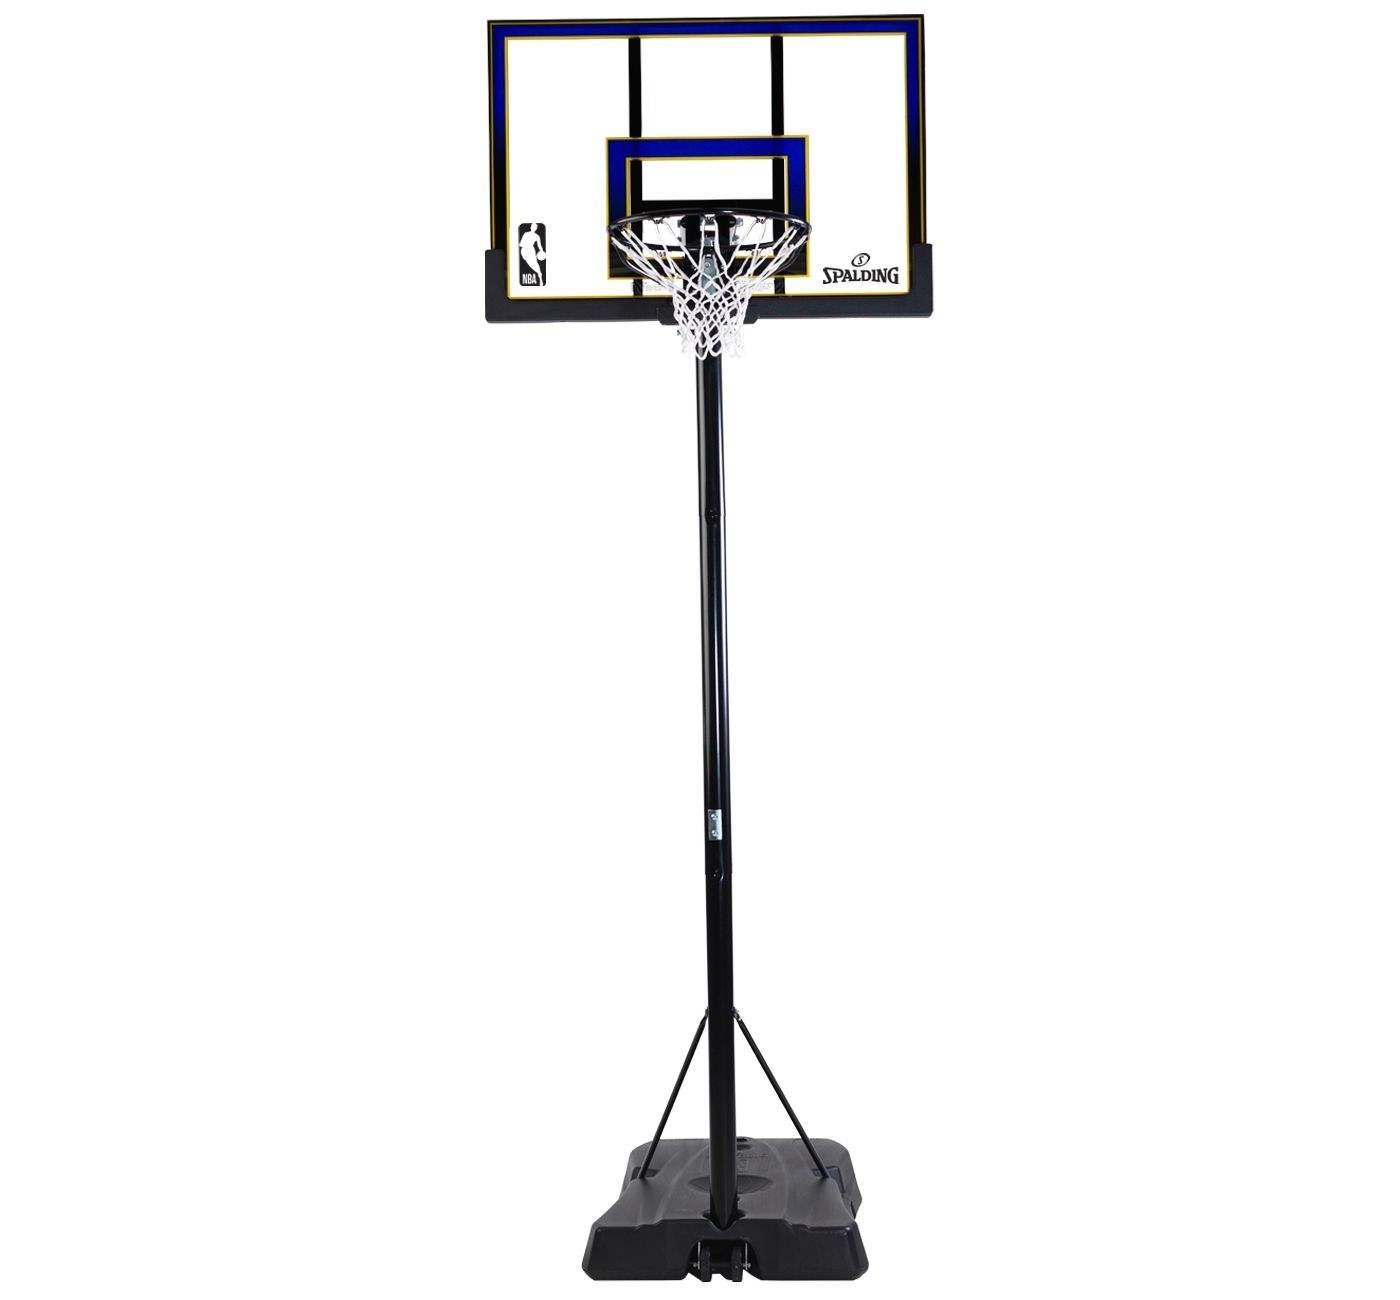 black, clear, and blue basketball hoop